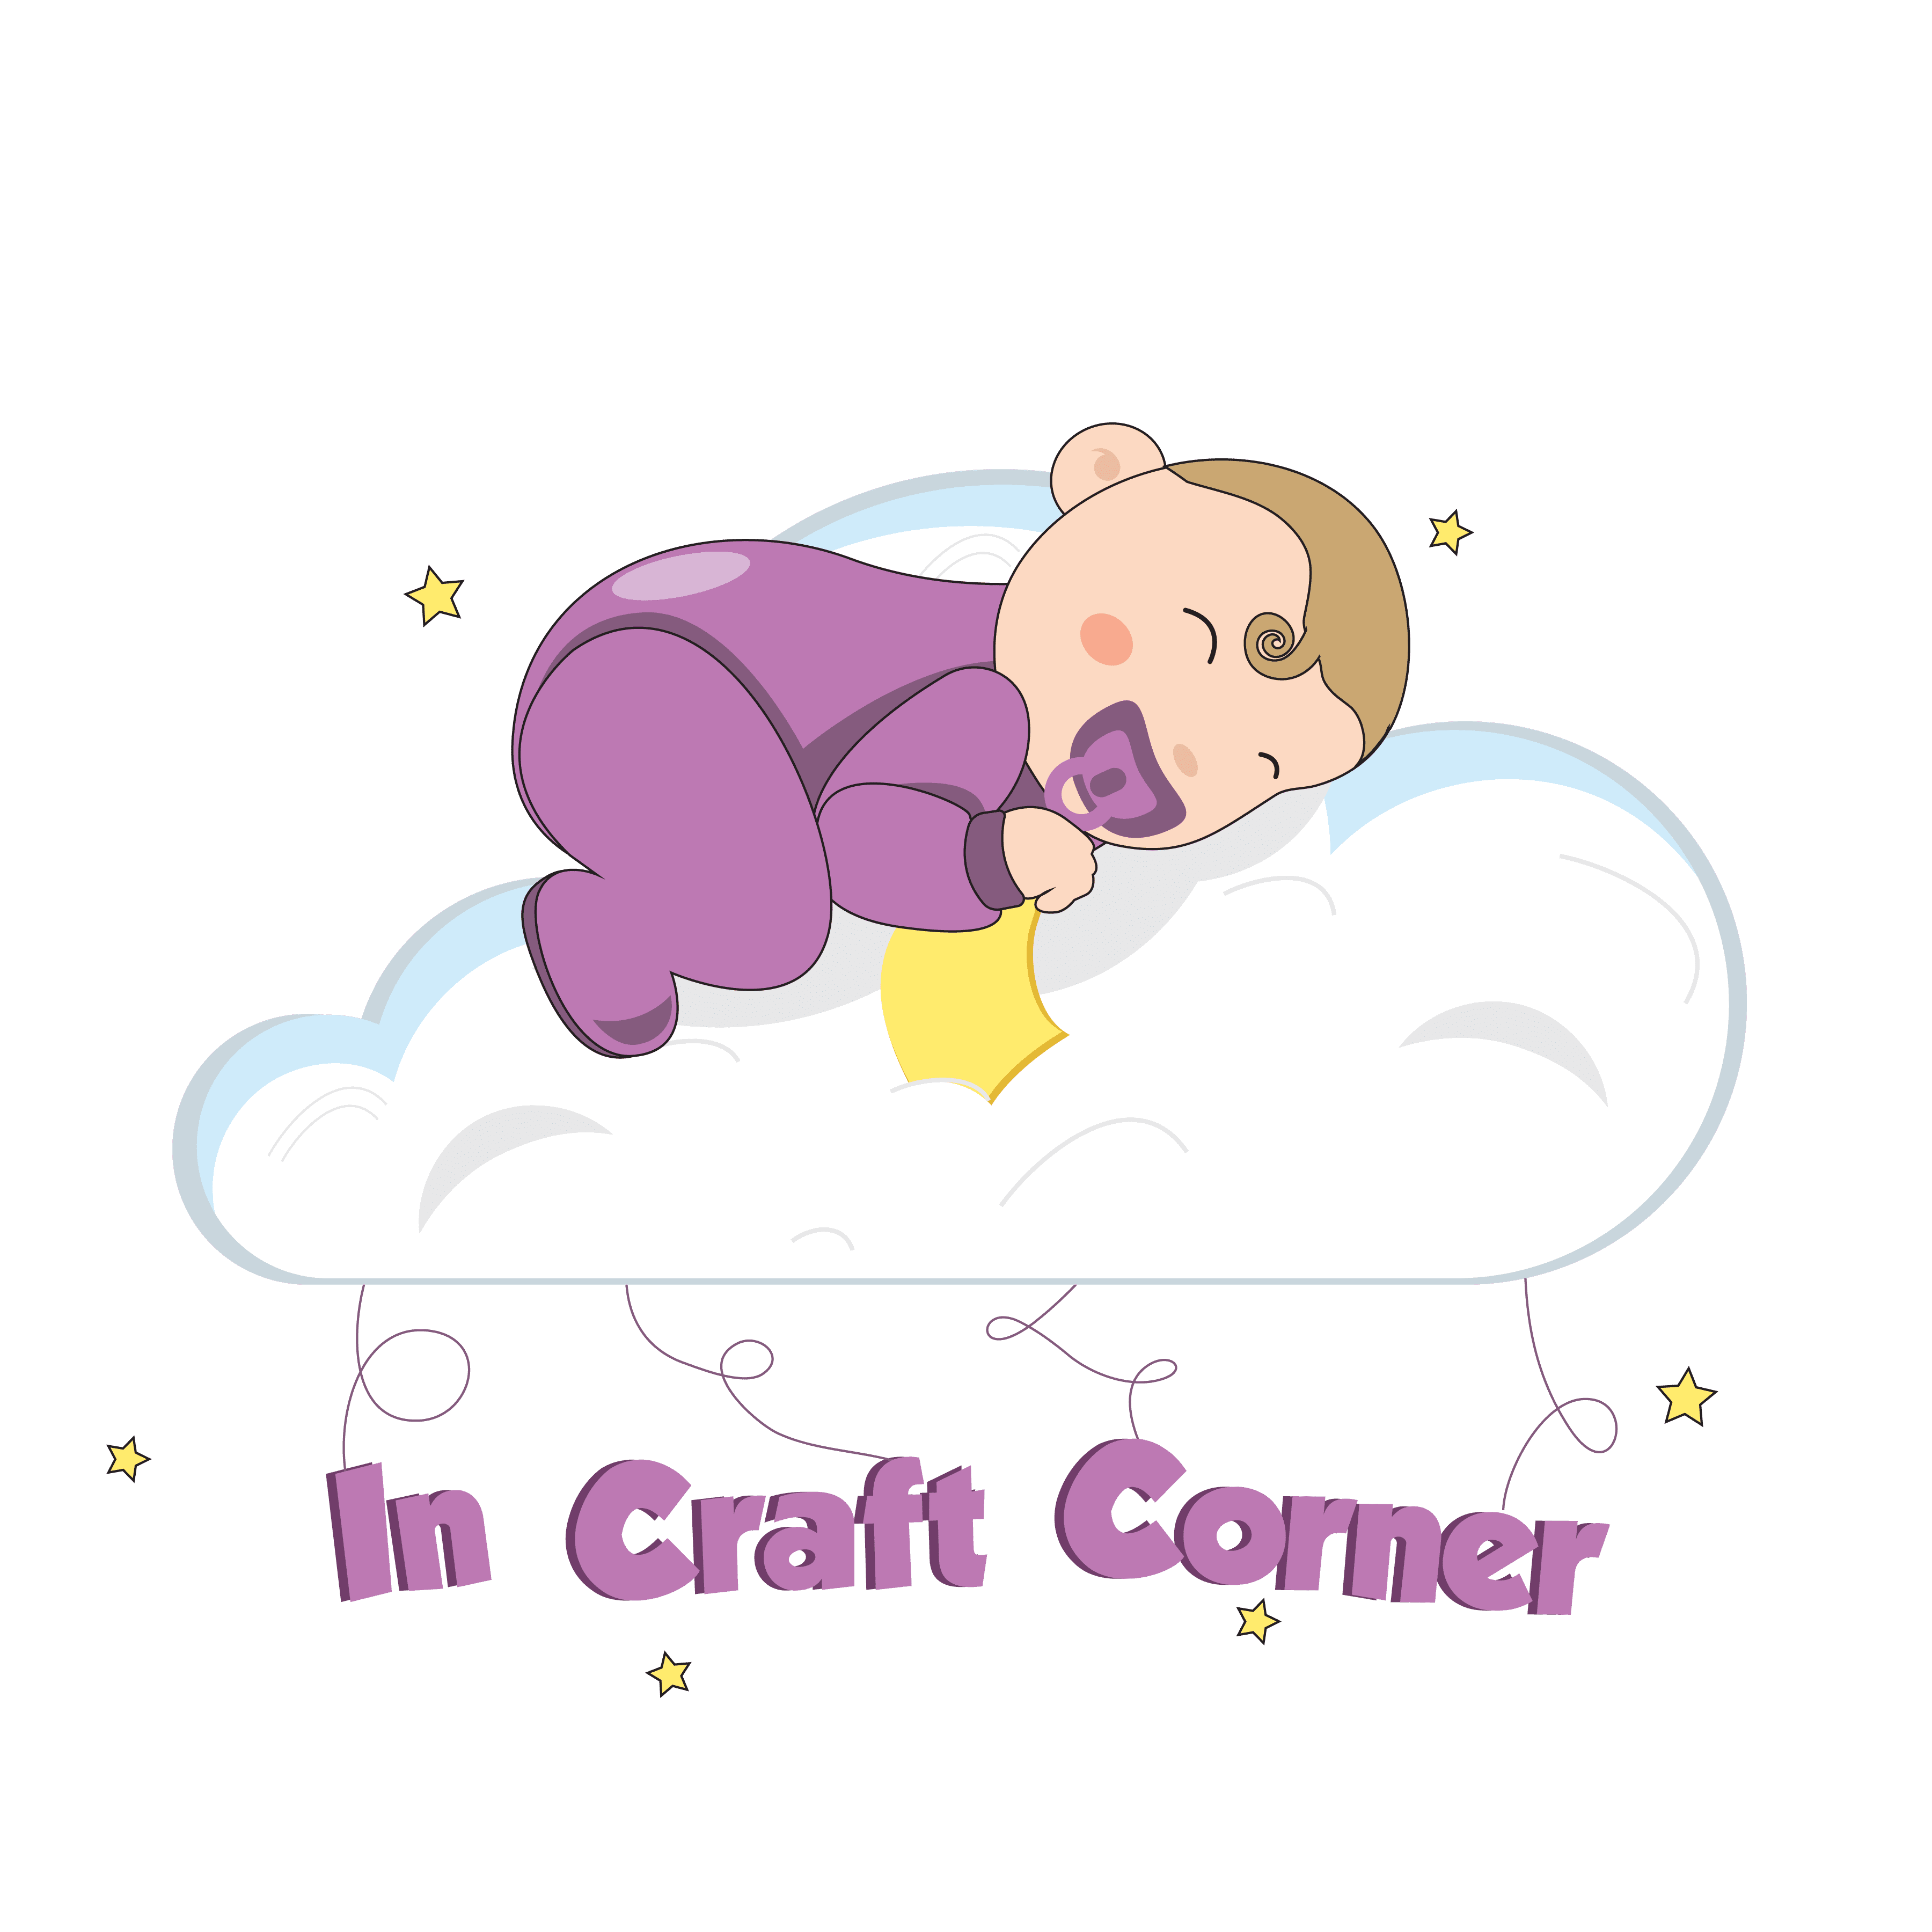 In Craft Corner